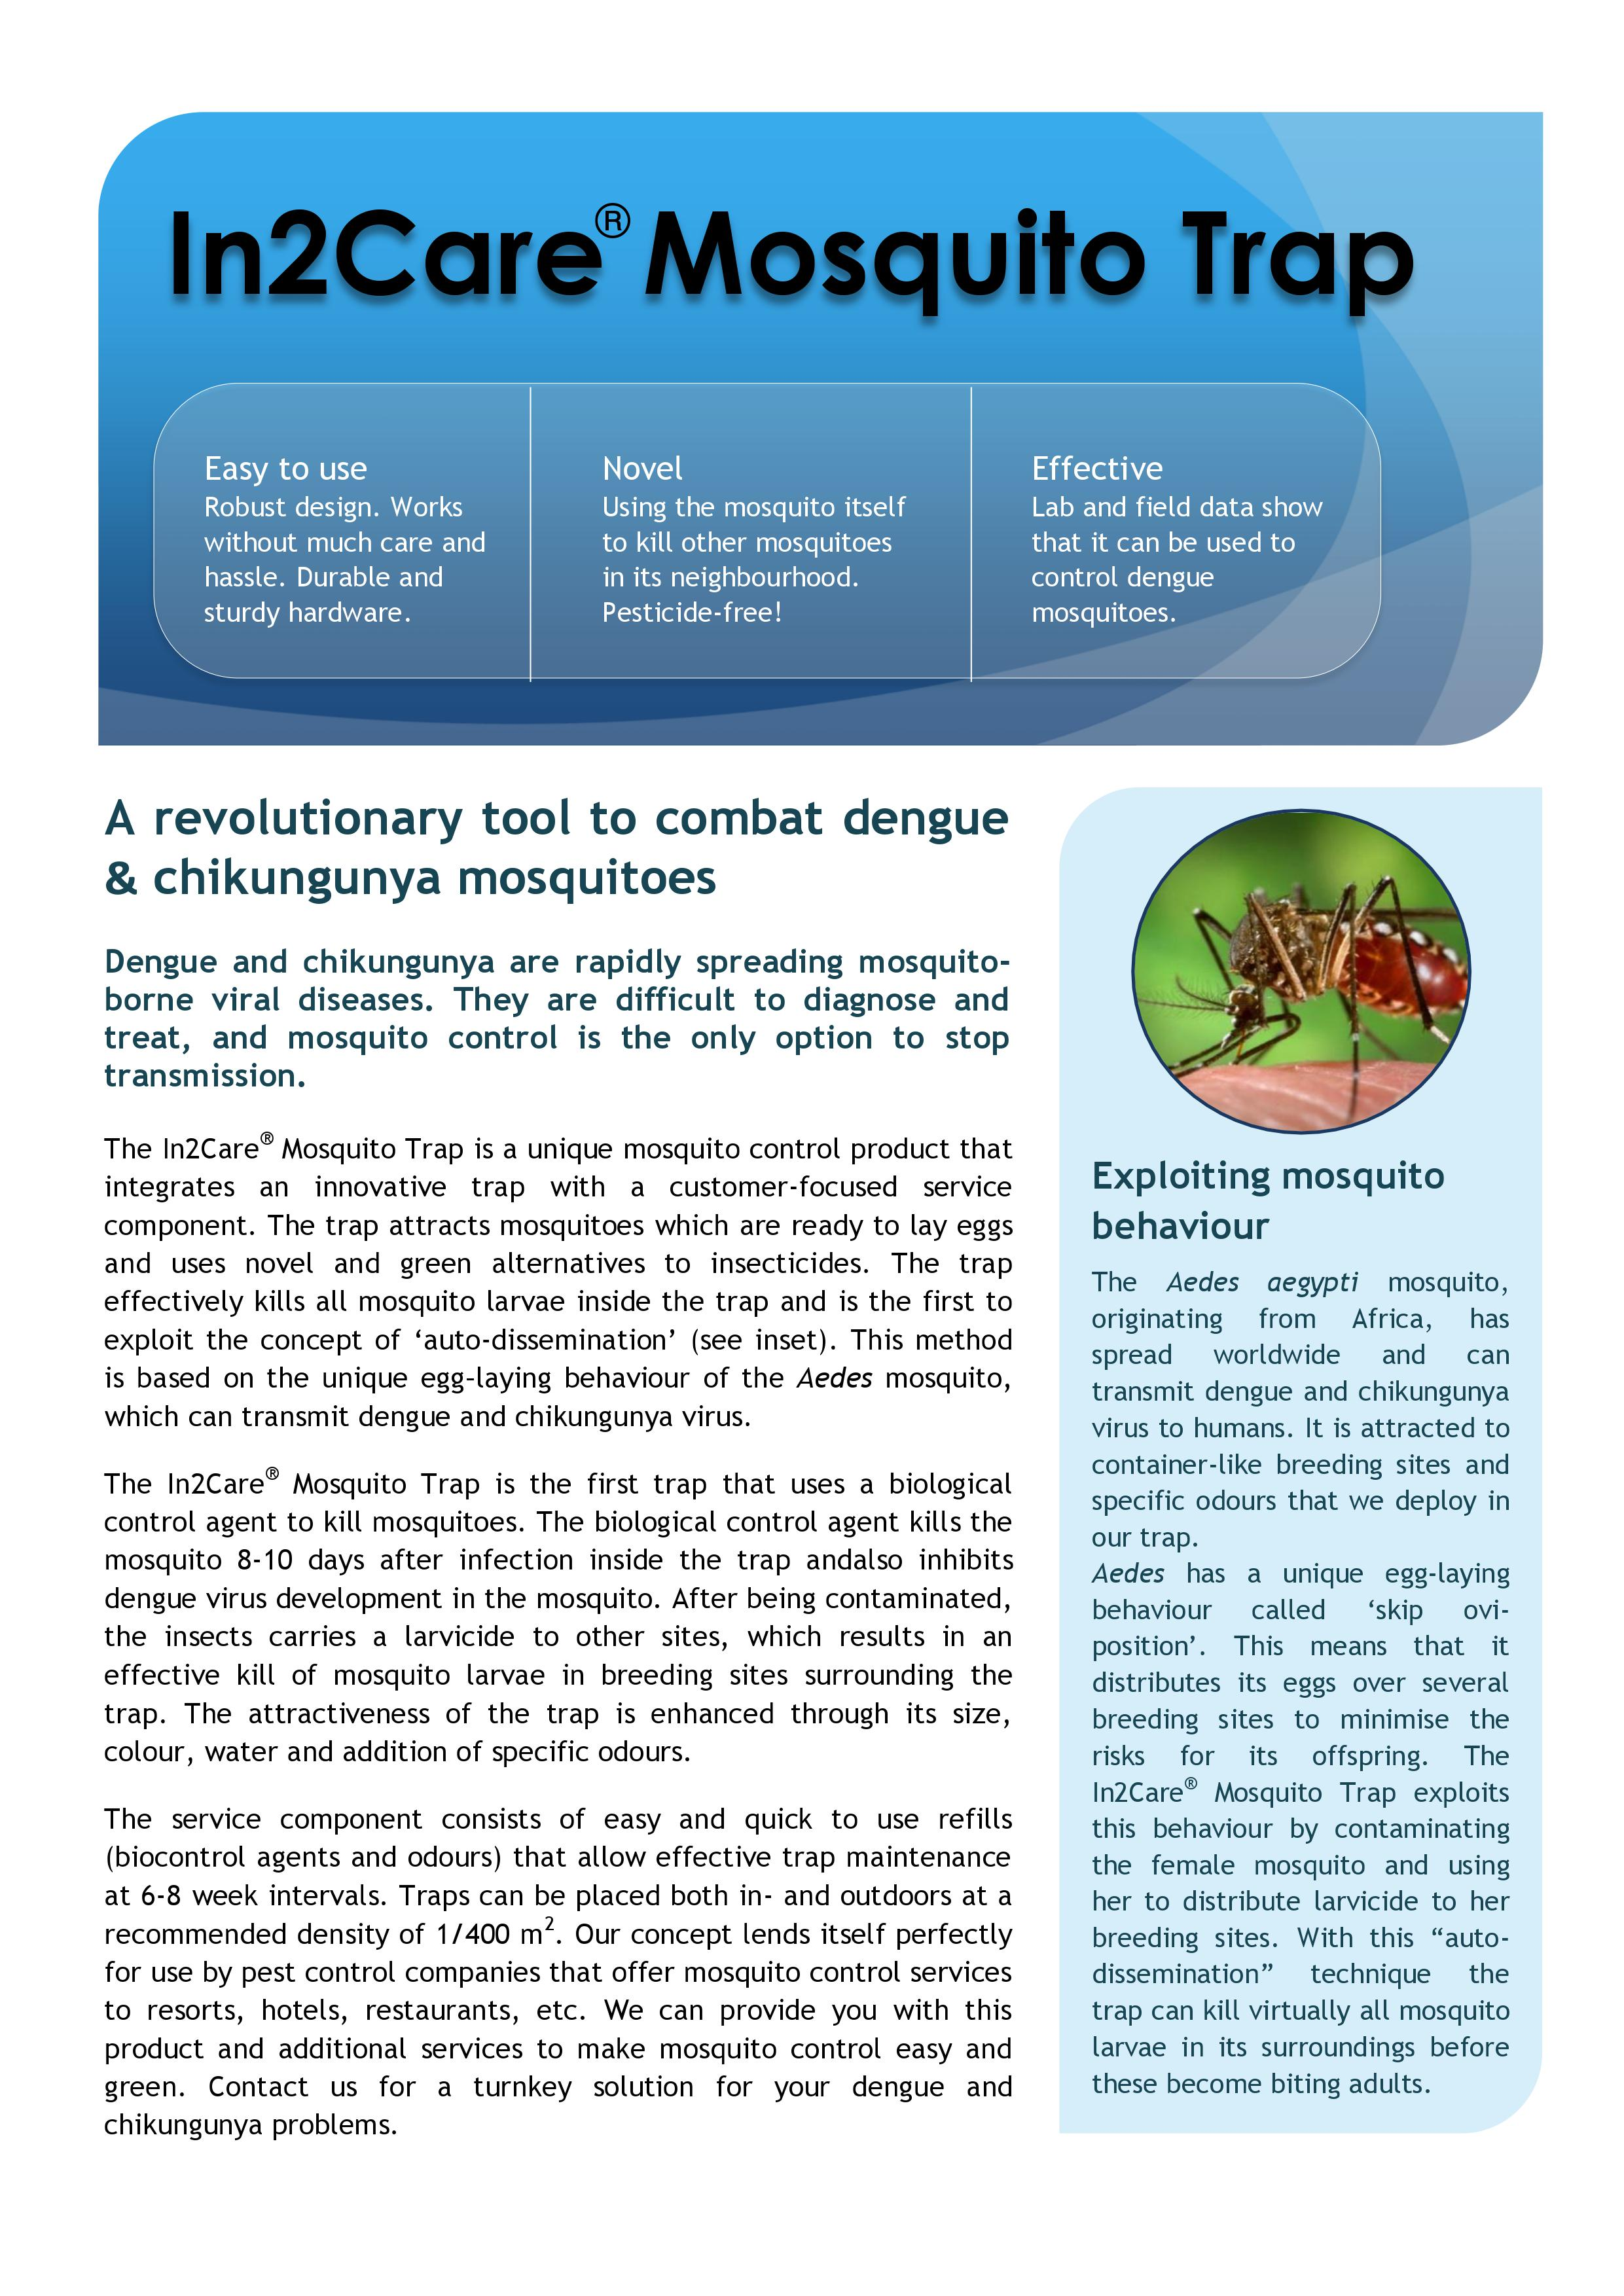 In2Care Mosquito Trap fact sheet